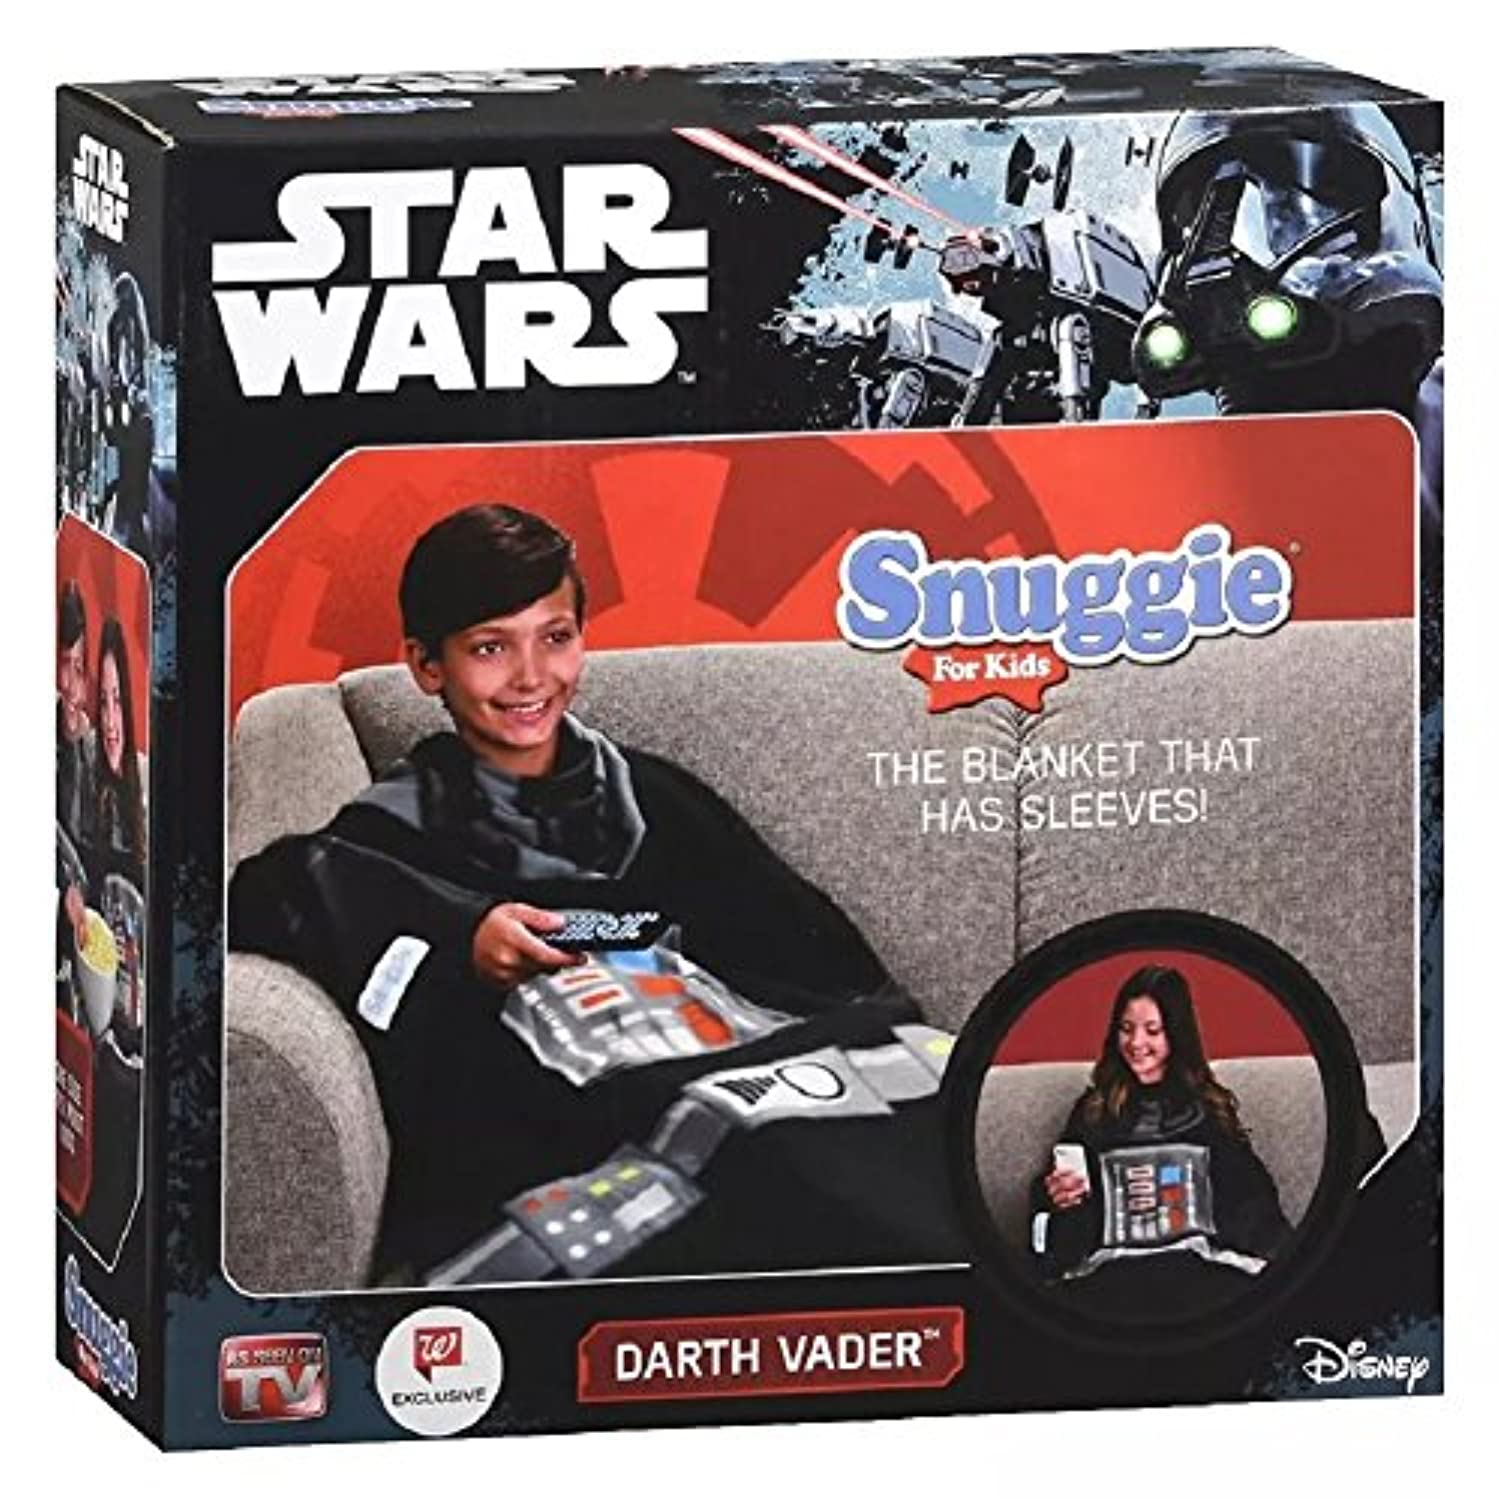 [Snuggie]Snuggie Star Wars For Kids Darth Vader B01N9APTVF [並行輸入品]